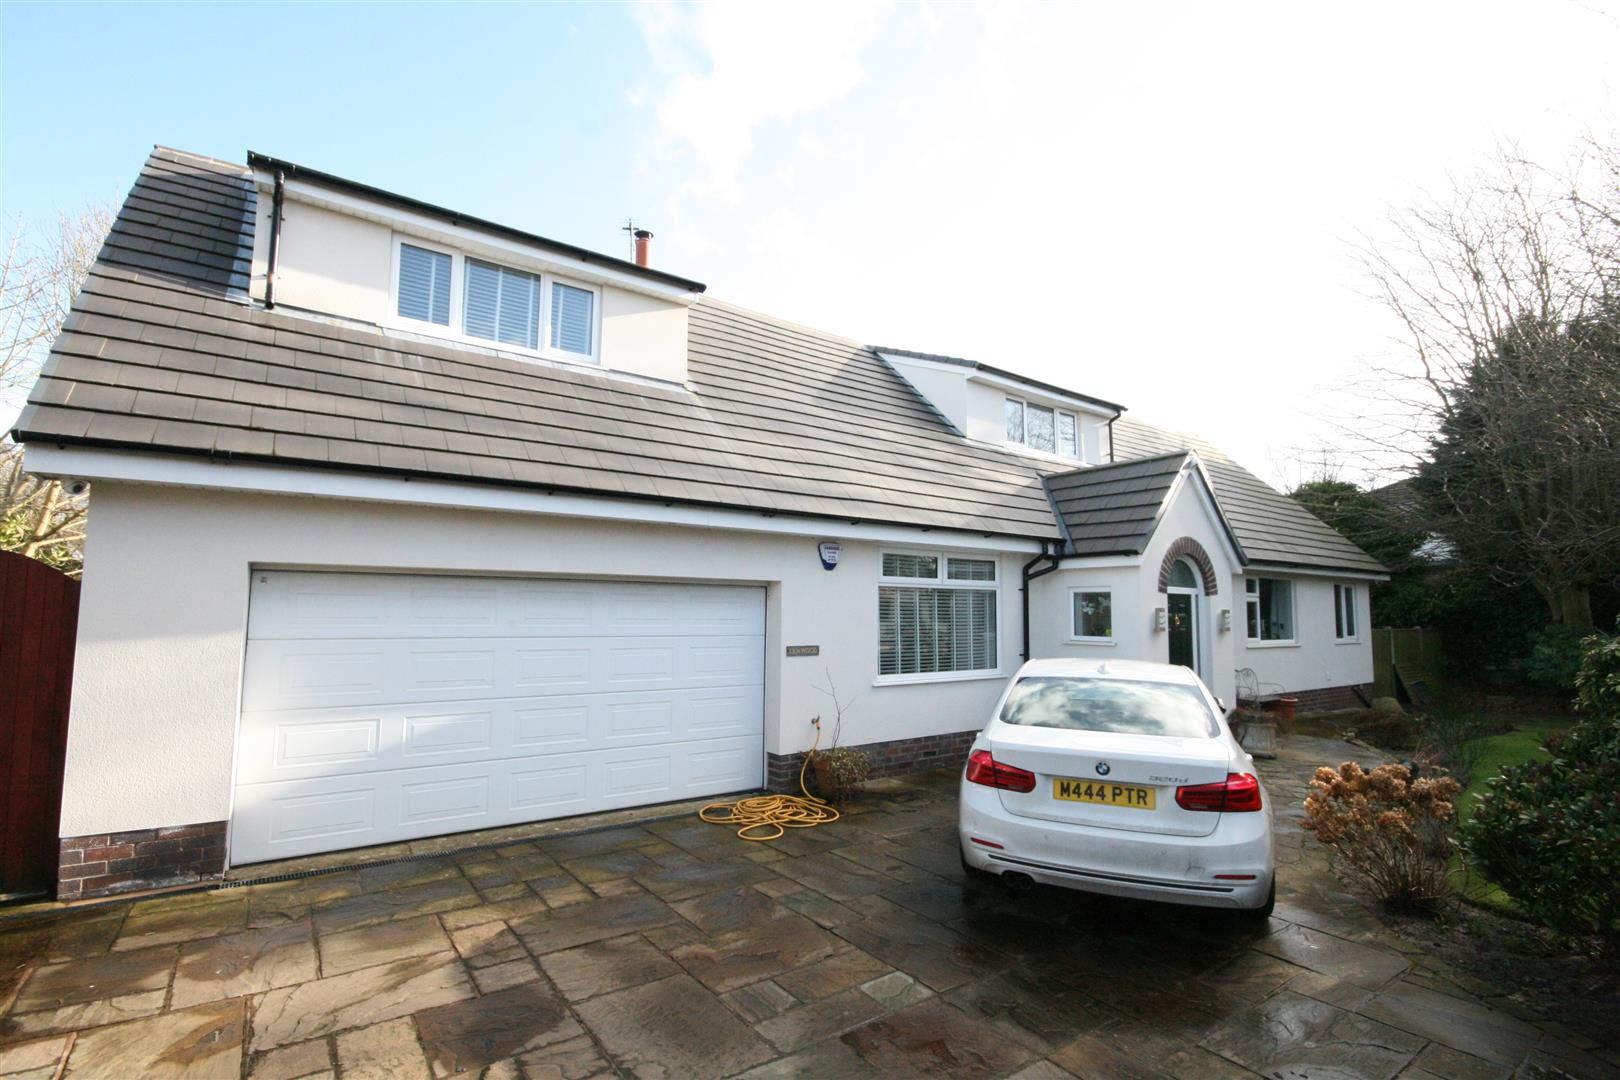 4 Bedrooms Detached House for sale in Kintour Road, Lytham